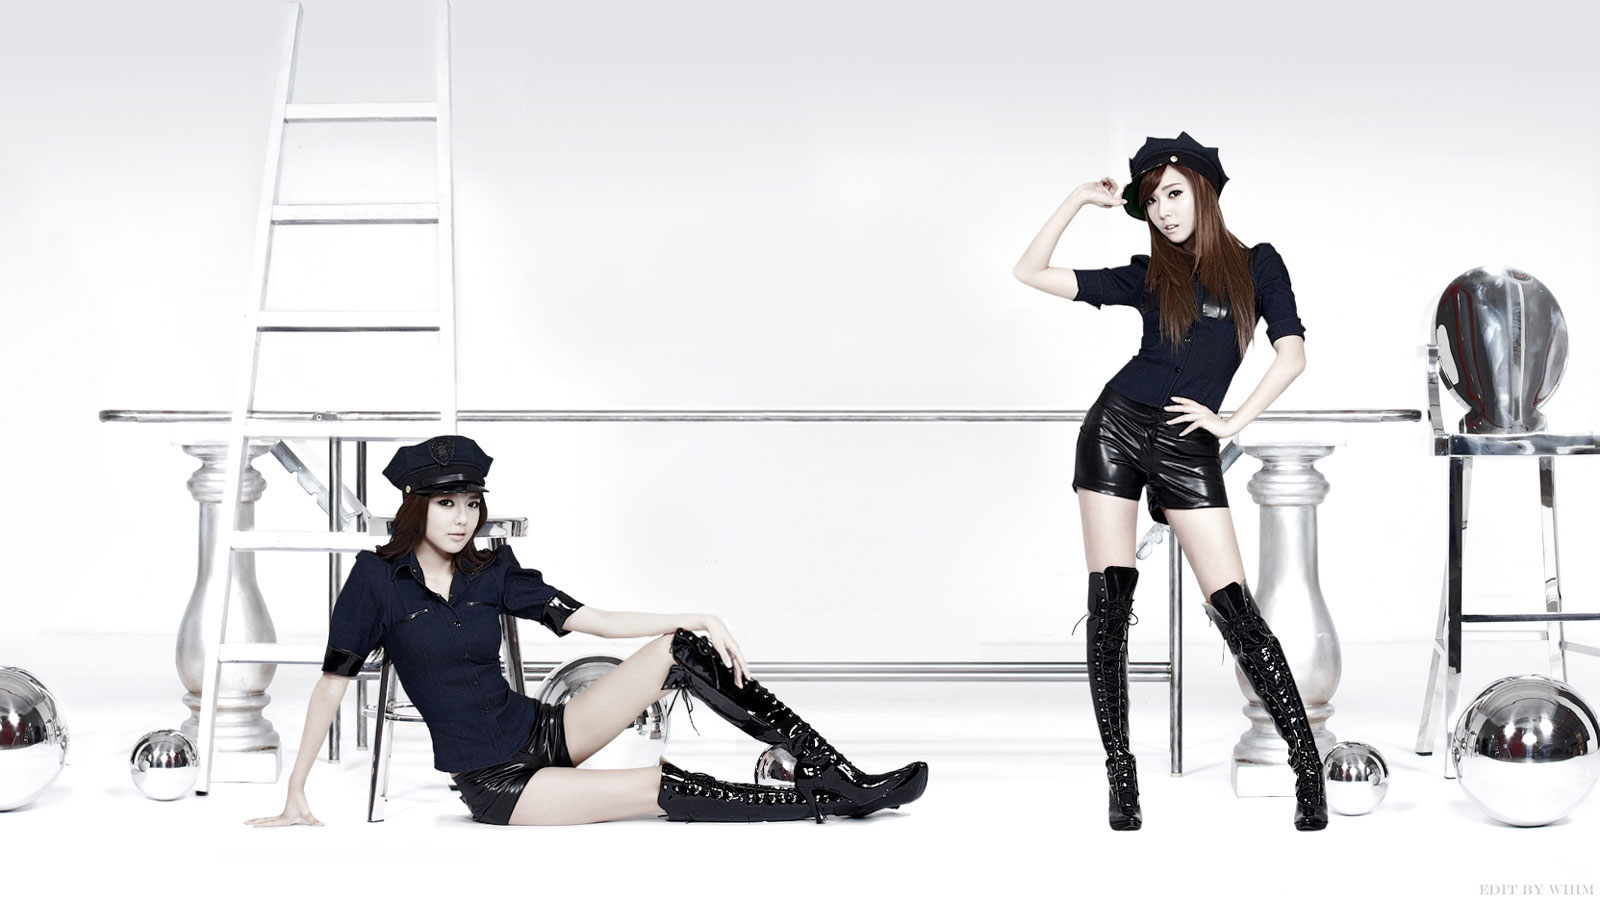 SNSD Sooyoung and Jessica Mr Taxi wallpaper